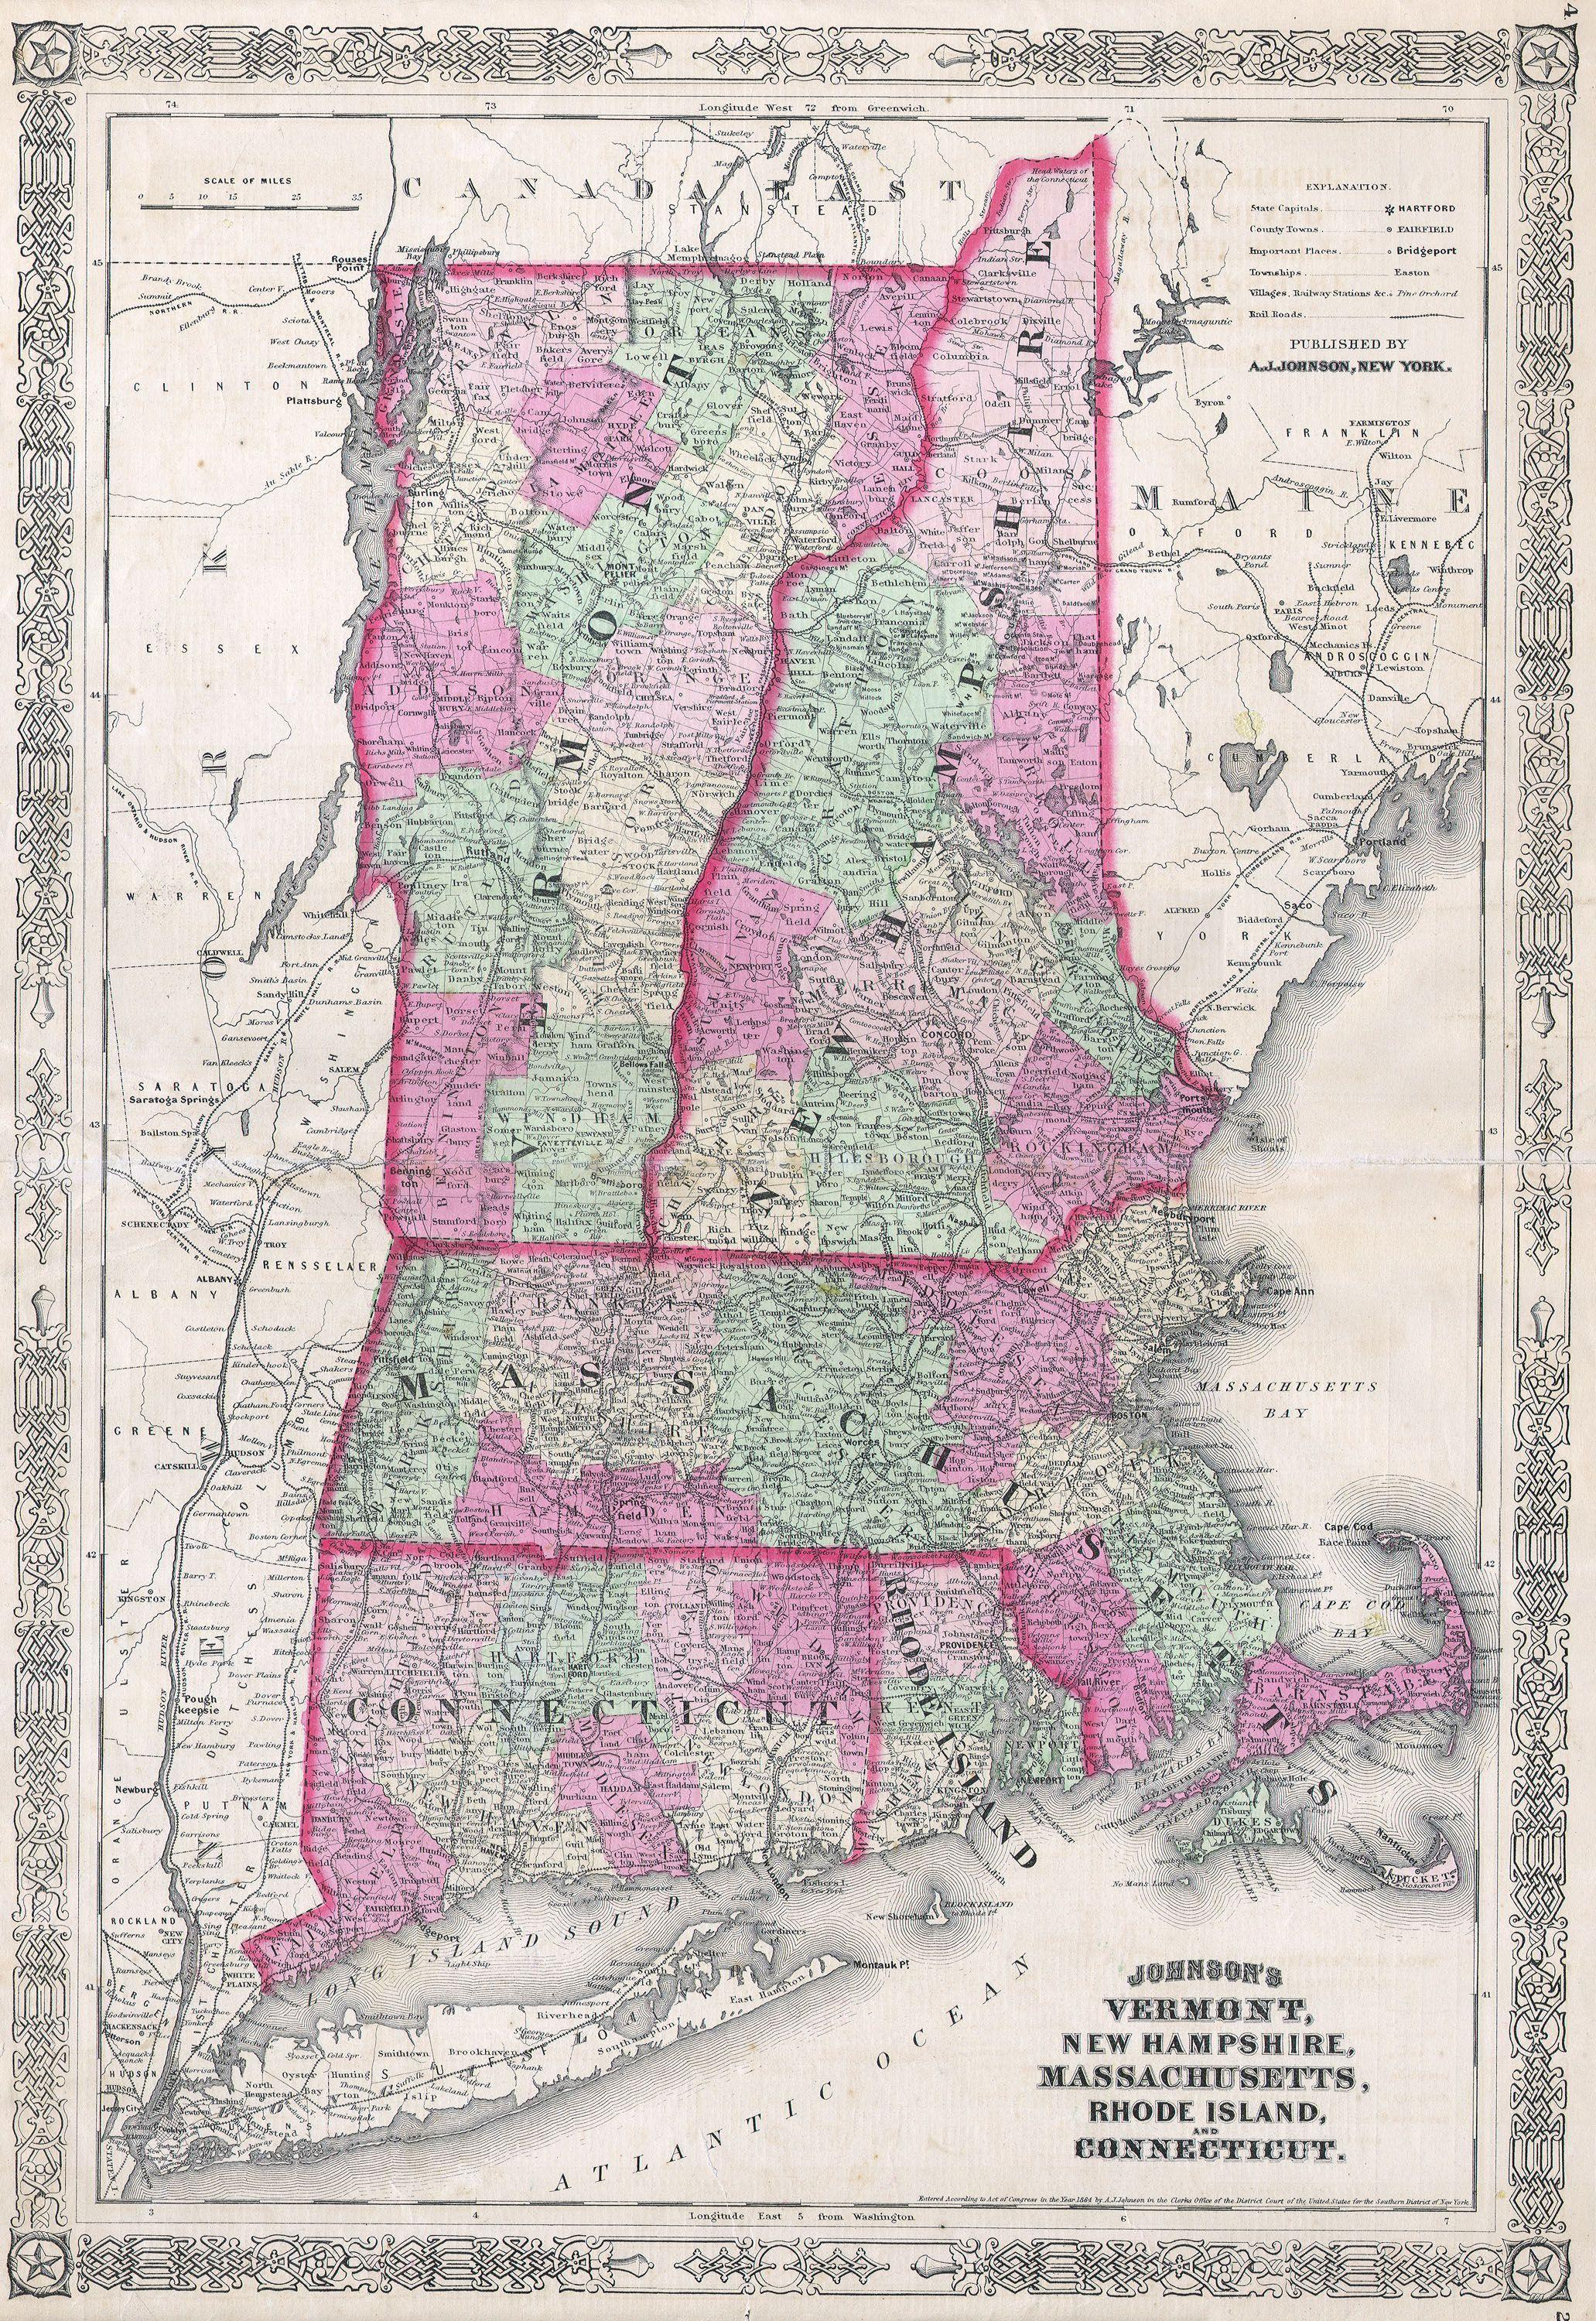 County Map Of The States Of New York New Hampshire Vermont - New york vermont map